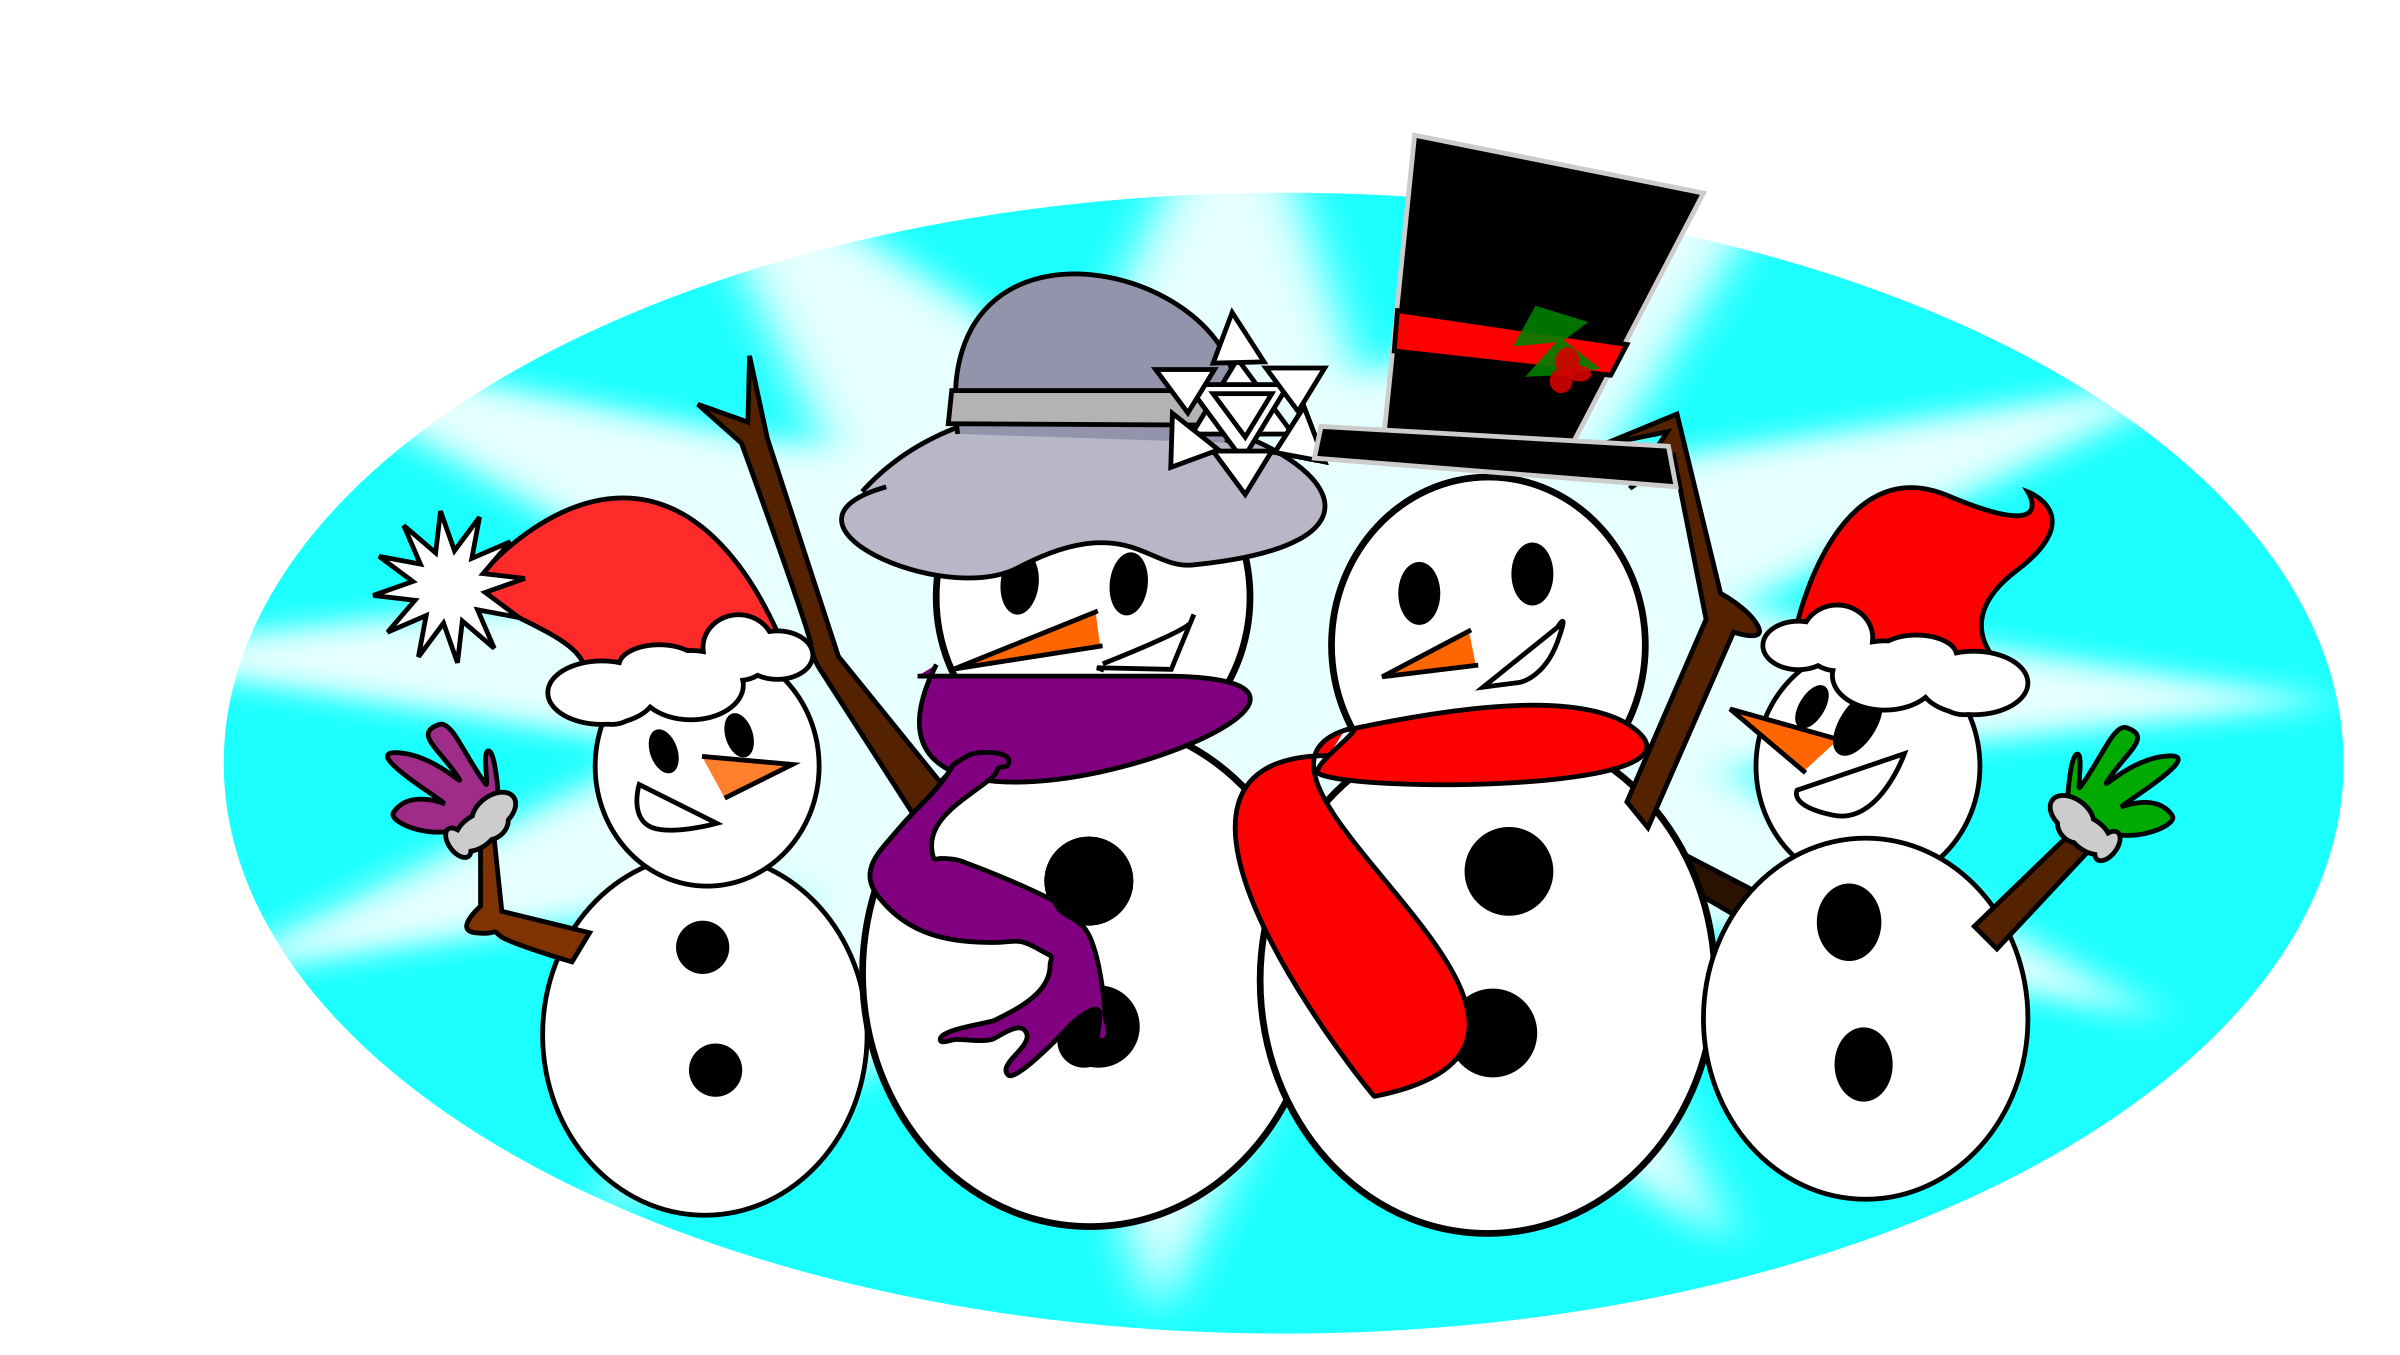 clipart snowman family rh openclipart org snowman family clipart